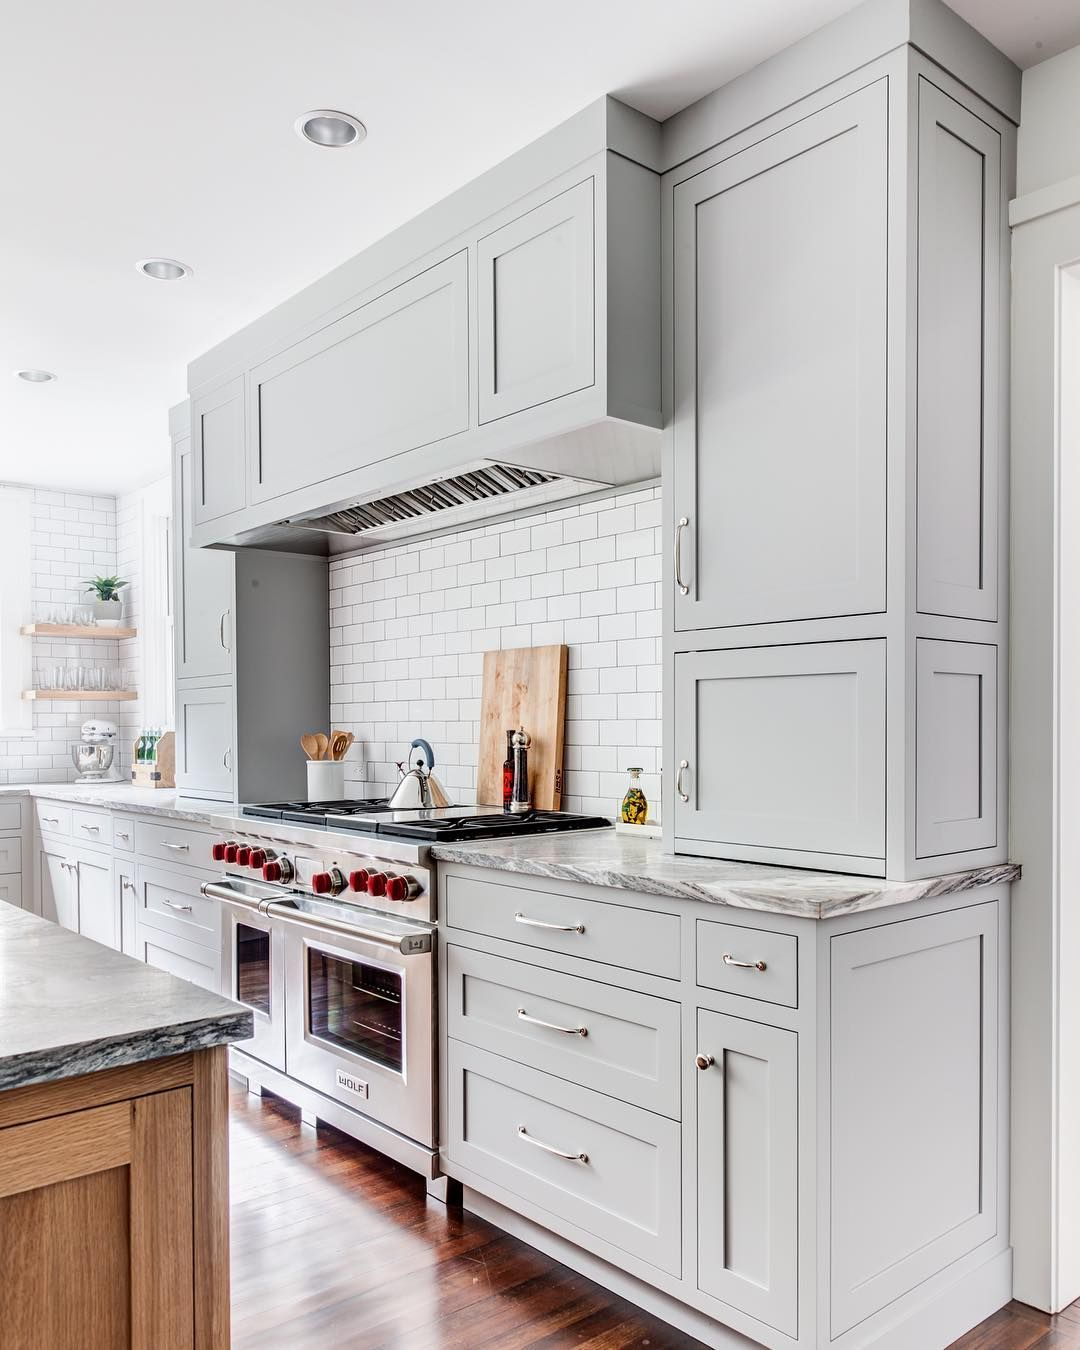 Grey Painted Kitchen Cabinets: Cabinet Color Is Benjamin Moore Coventry Gray